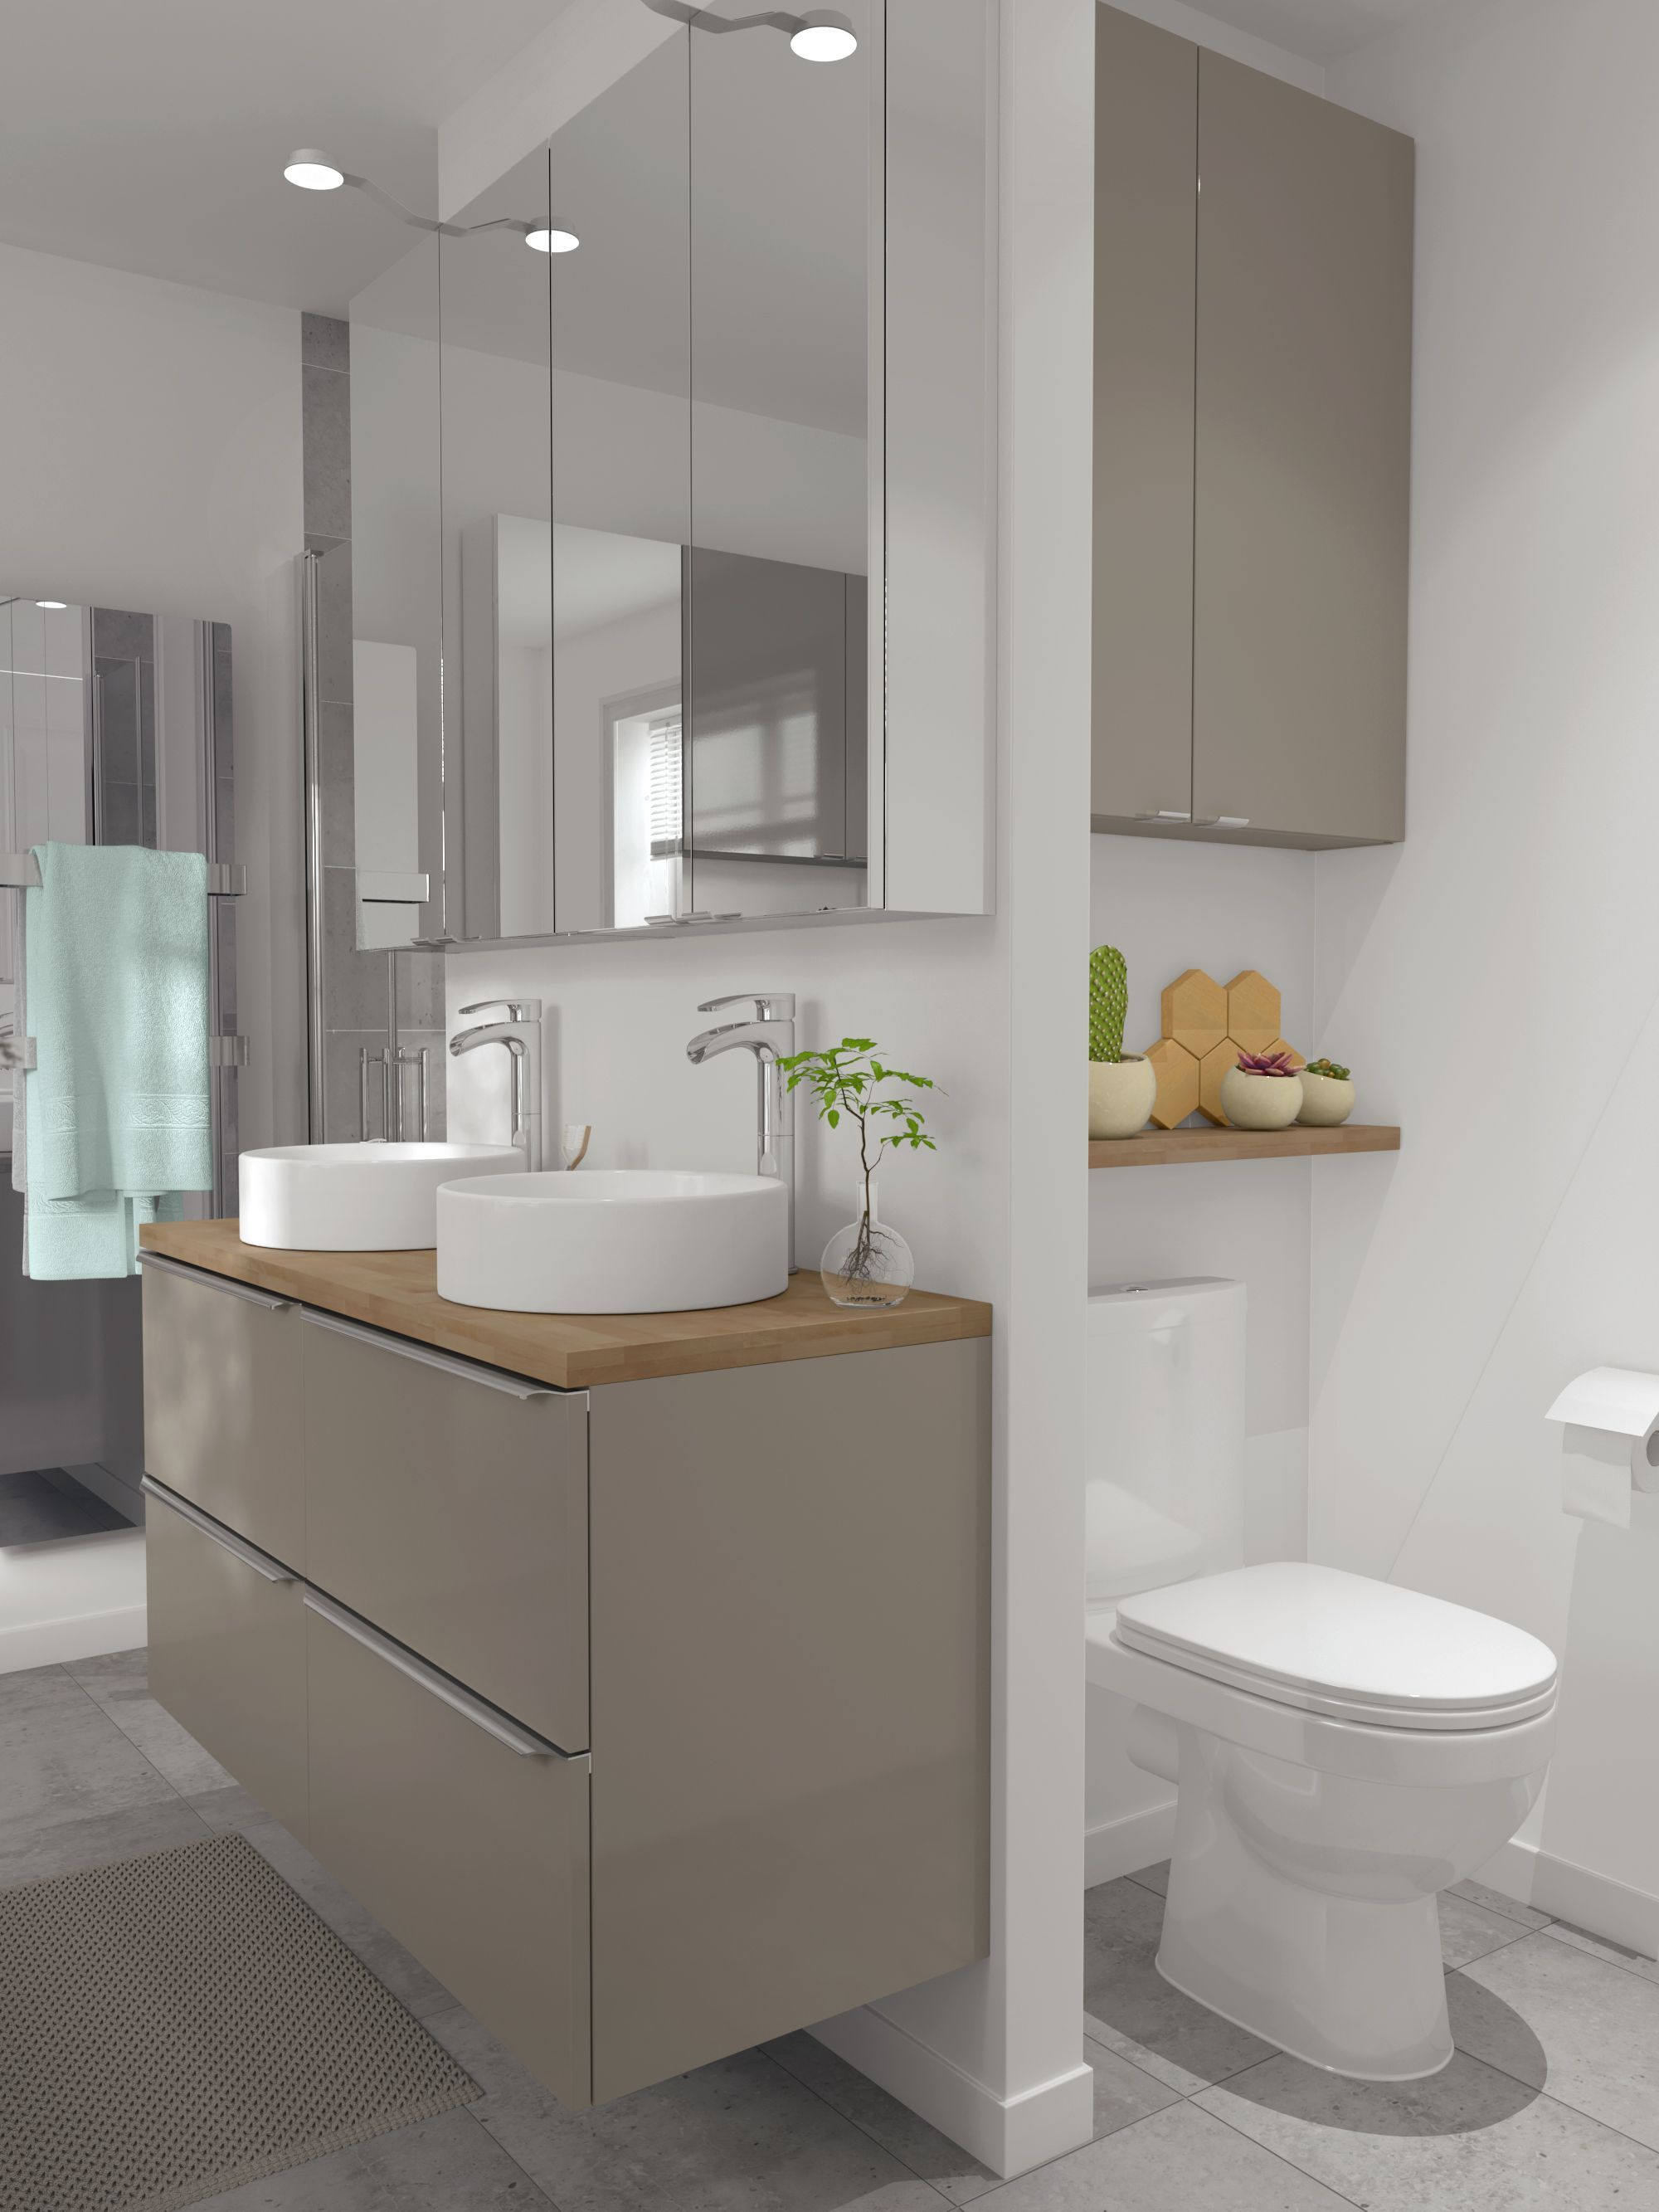 B Q S Imandra Bathroom Range Is A Modular Solution That Allows You